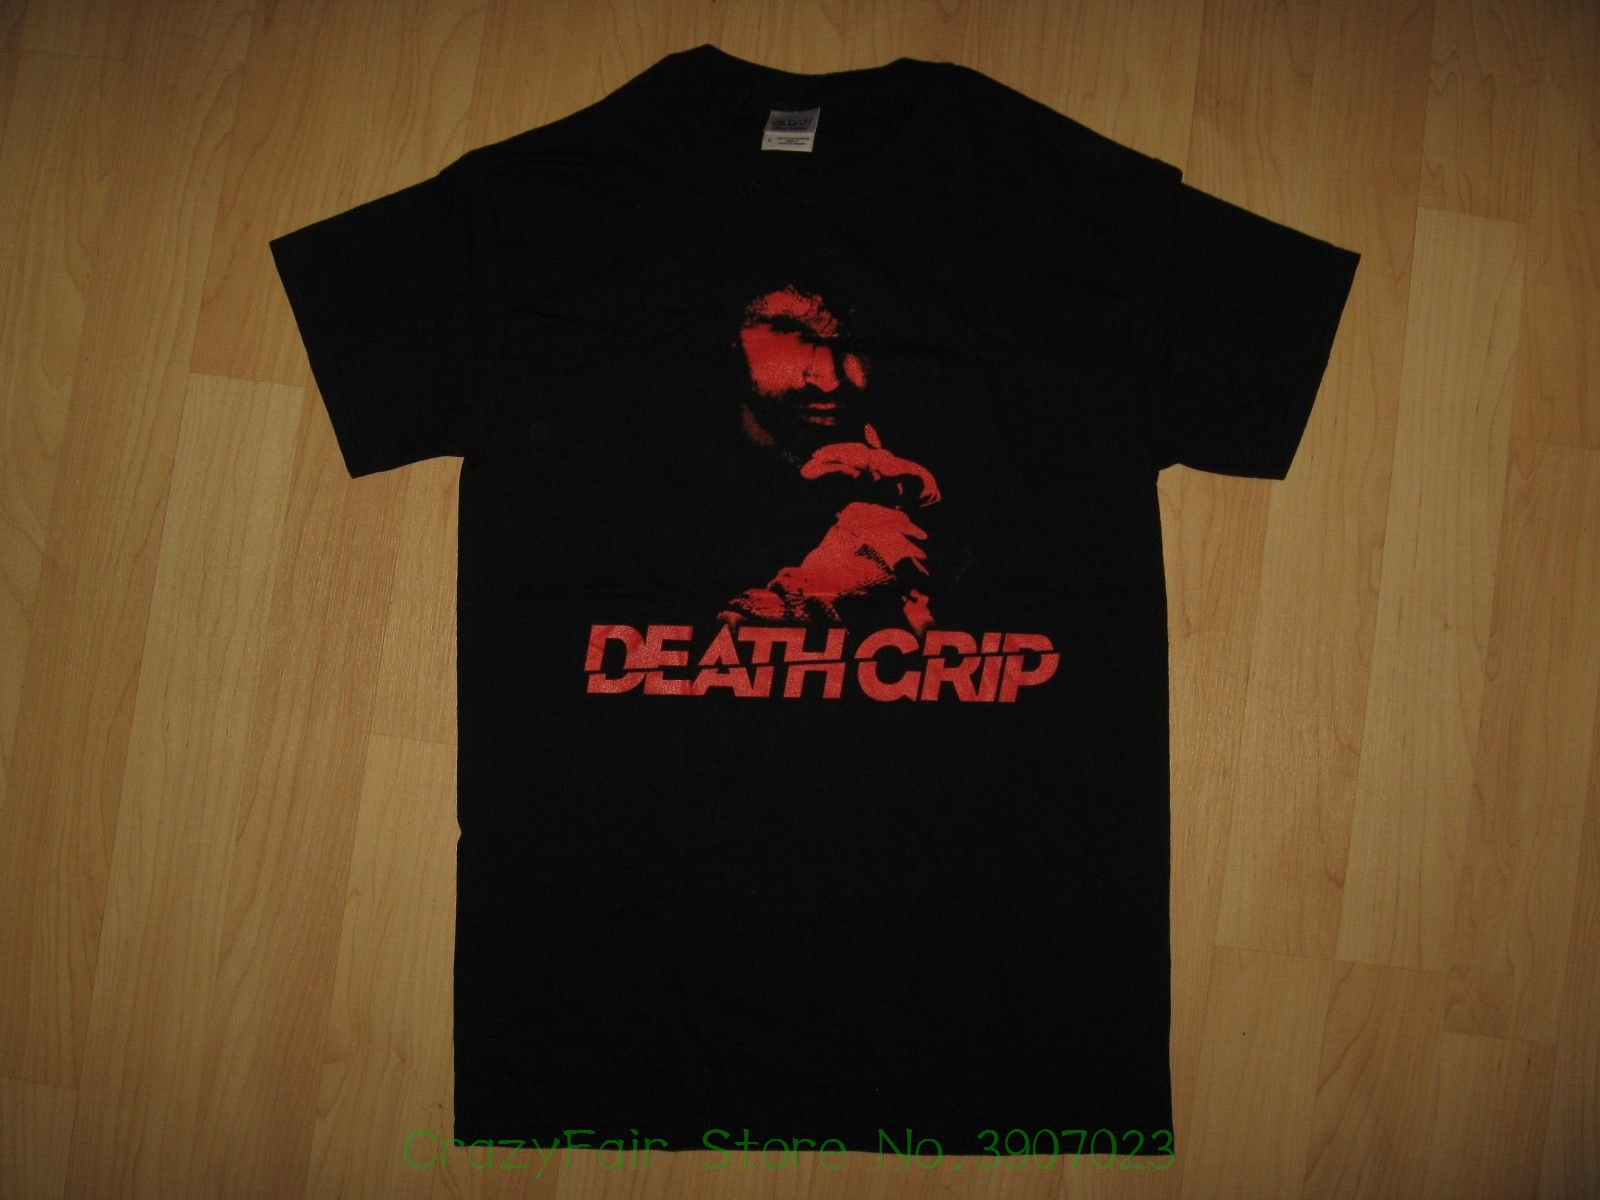 Death Grip Movie Tee - 2012 Martial Artist Film Eric Jacobus Black T Shirt Small New Comfortable Cotton Short-sleeve T-shirt image